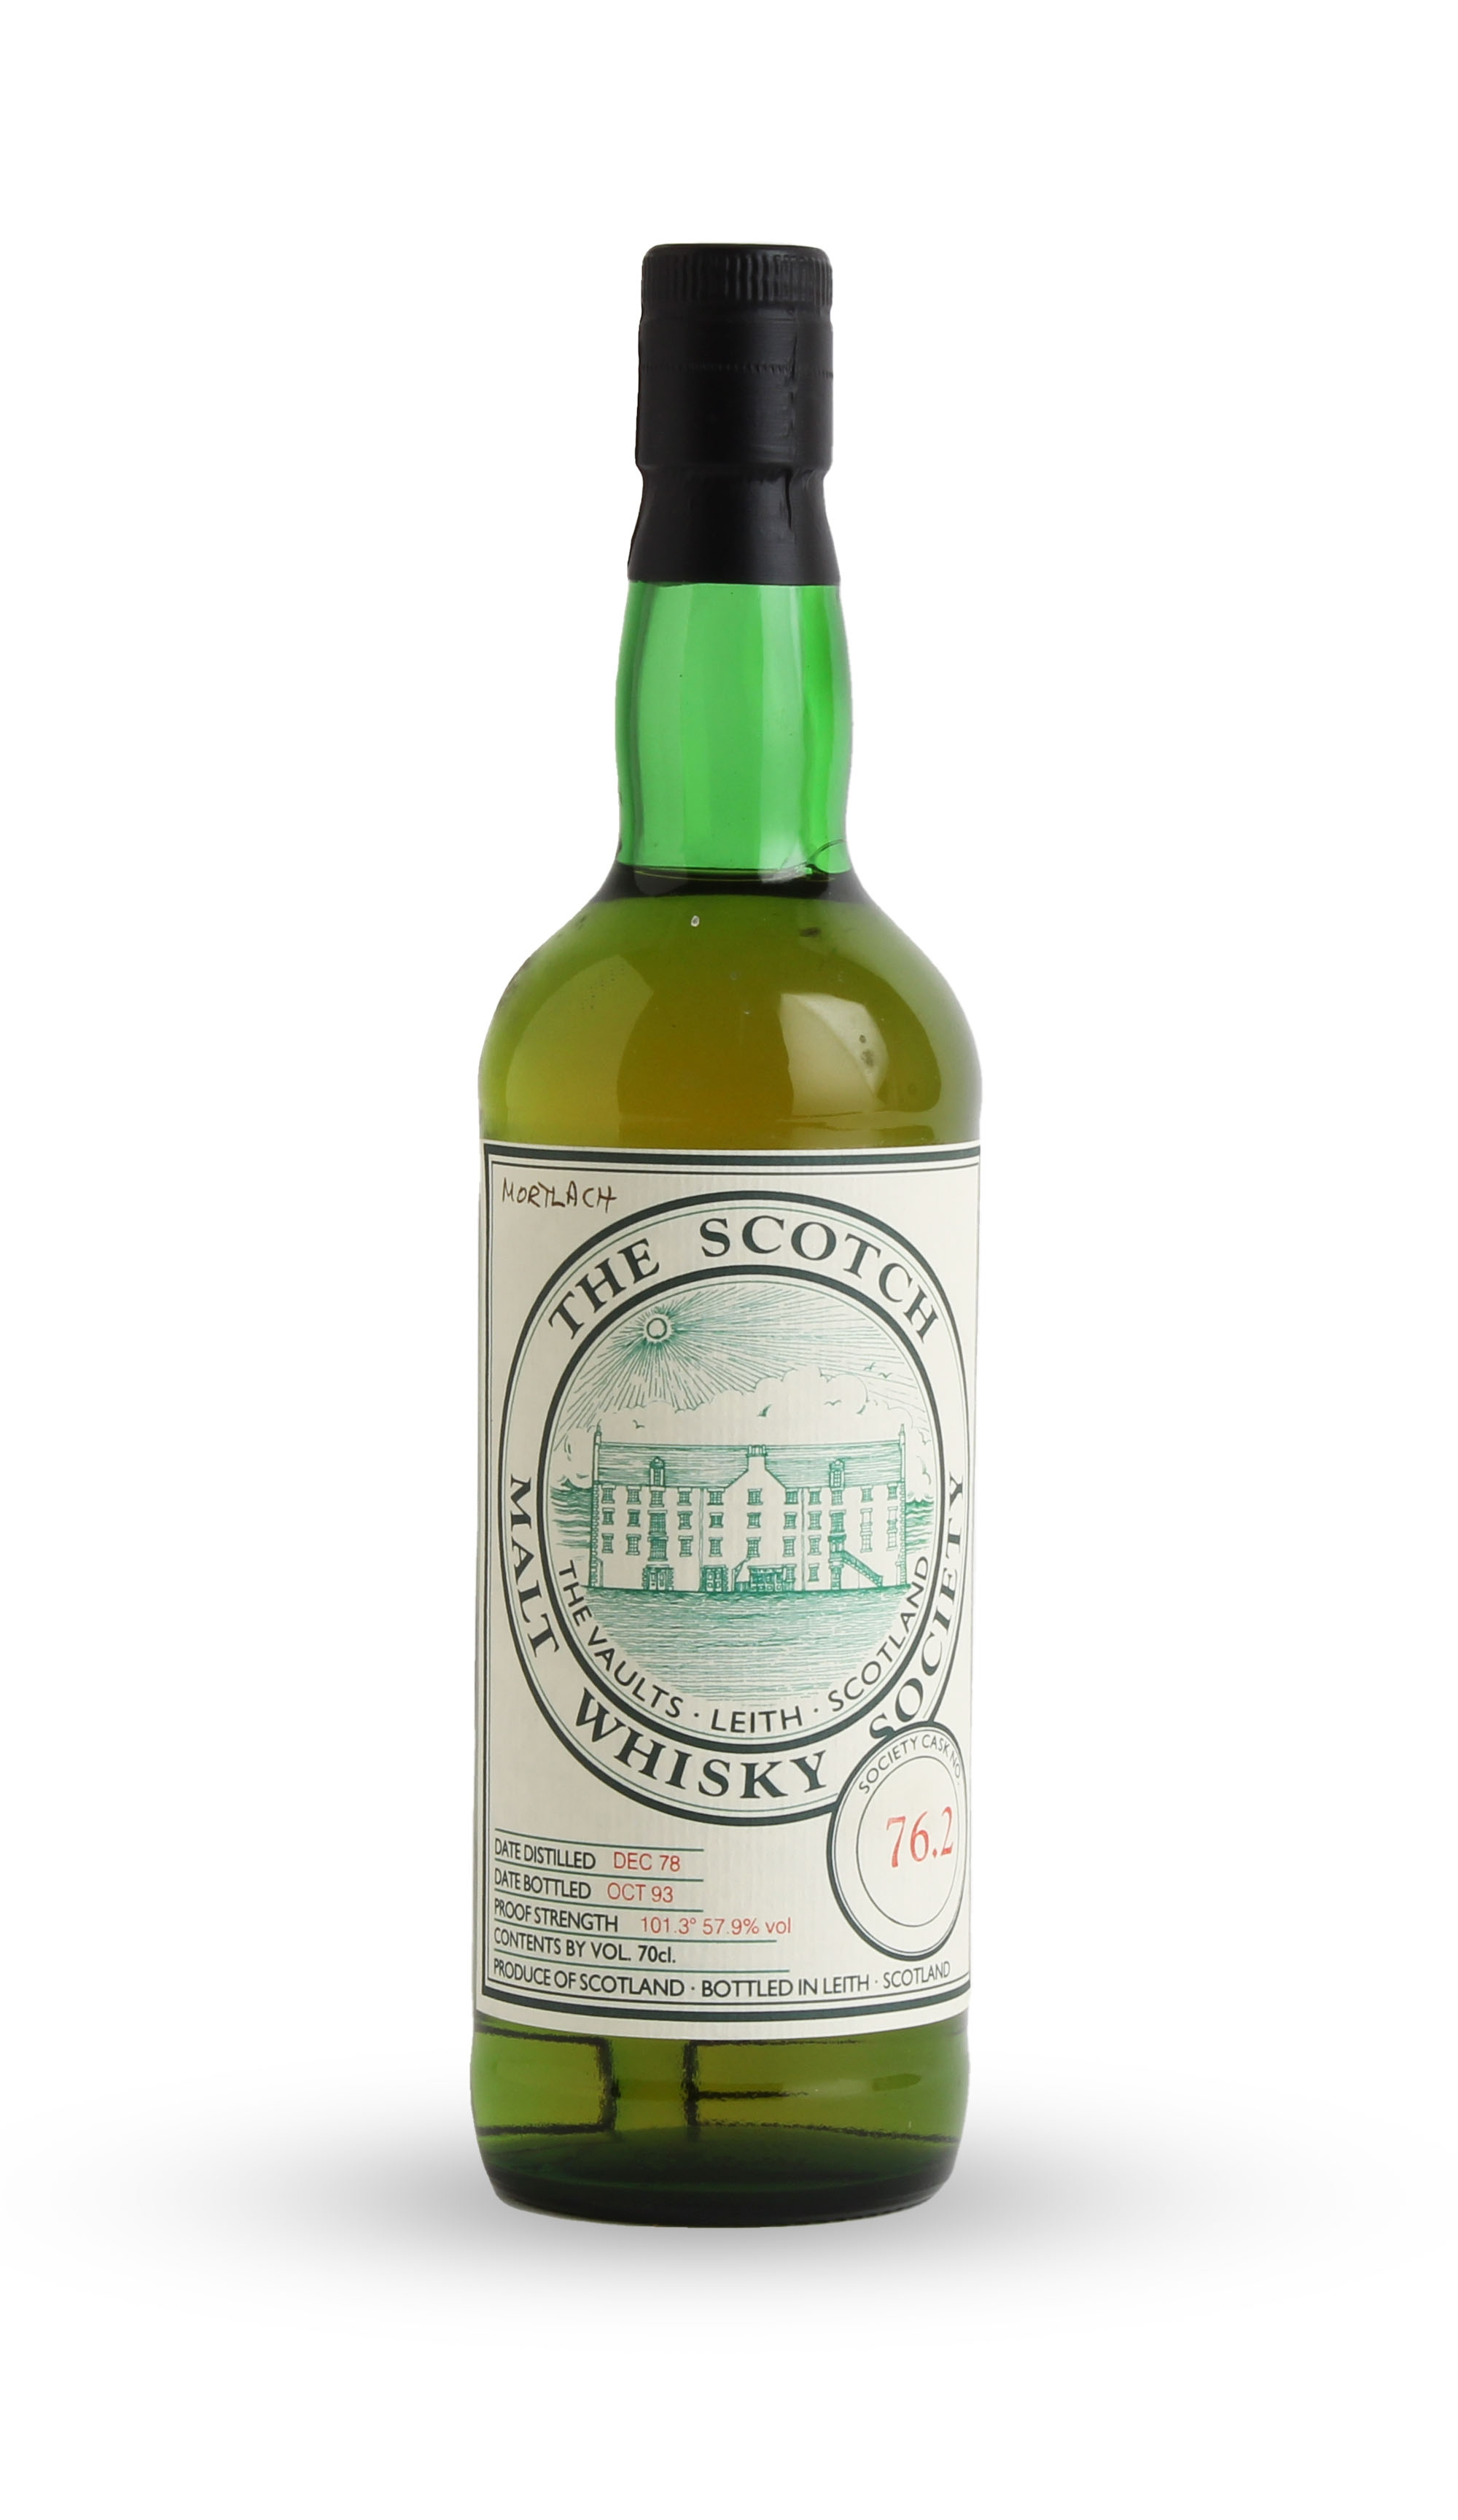 Mortlach-1978 (SMWS 76.2)